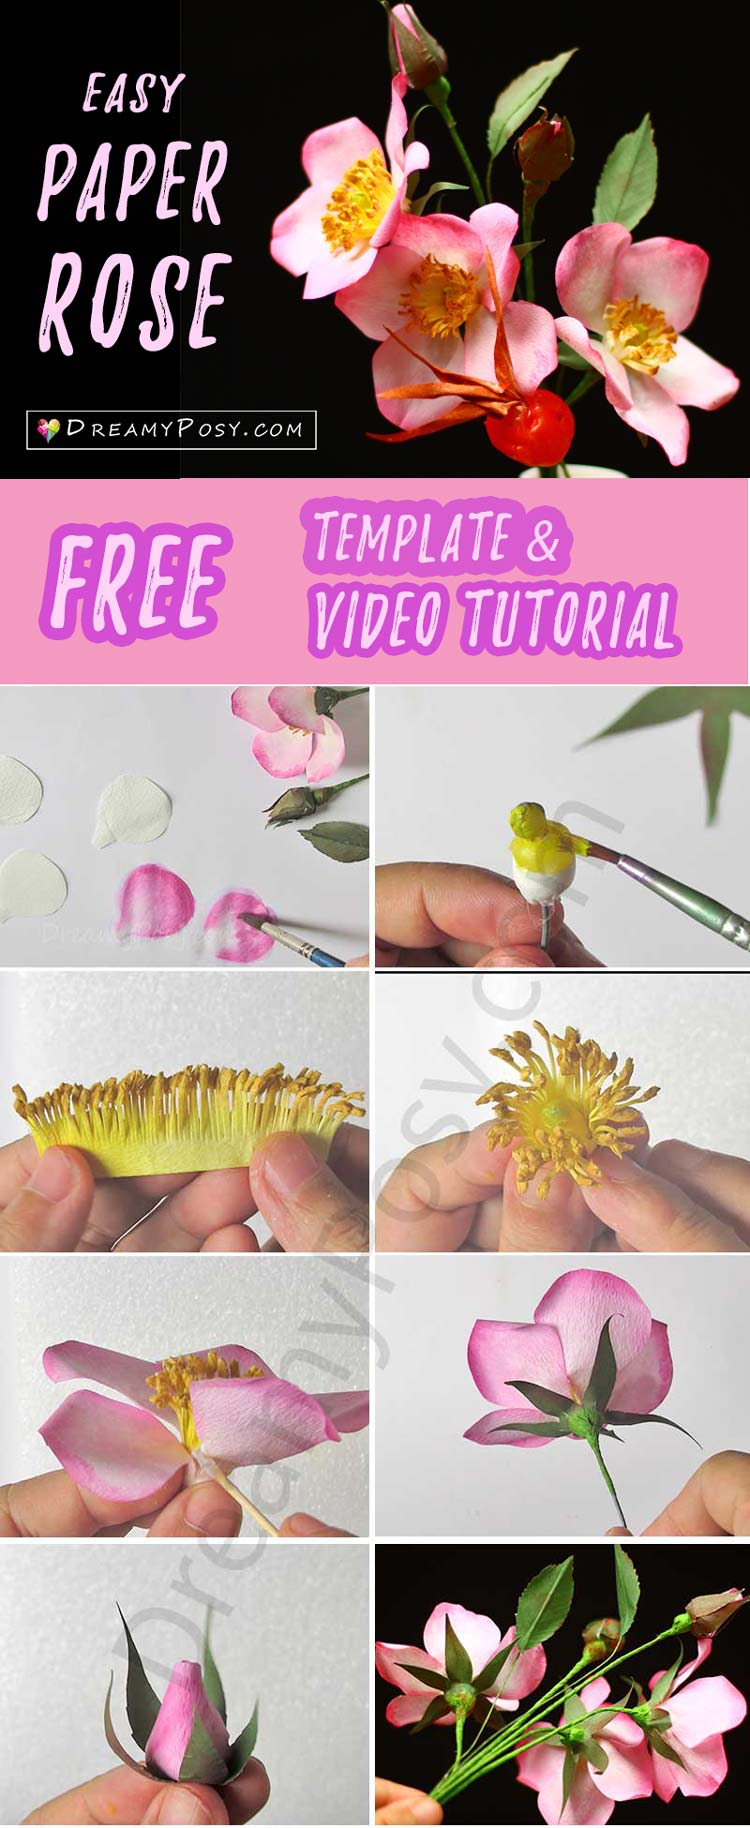 How To Make Coffee Filter Roses So Realistic Free Template